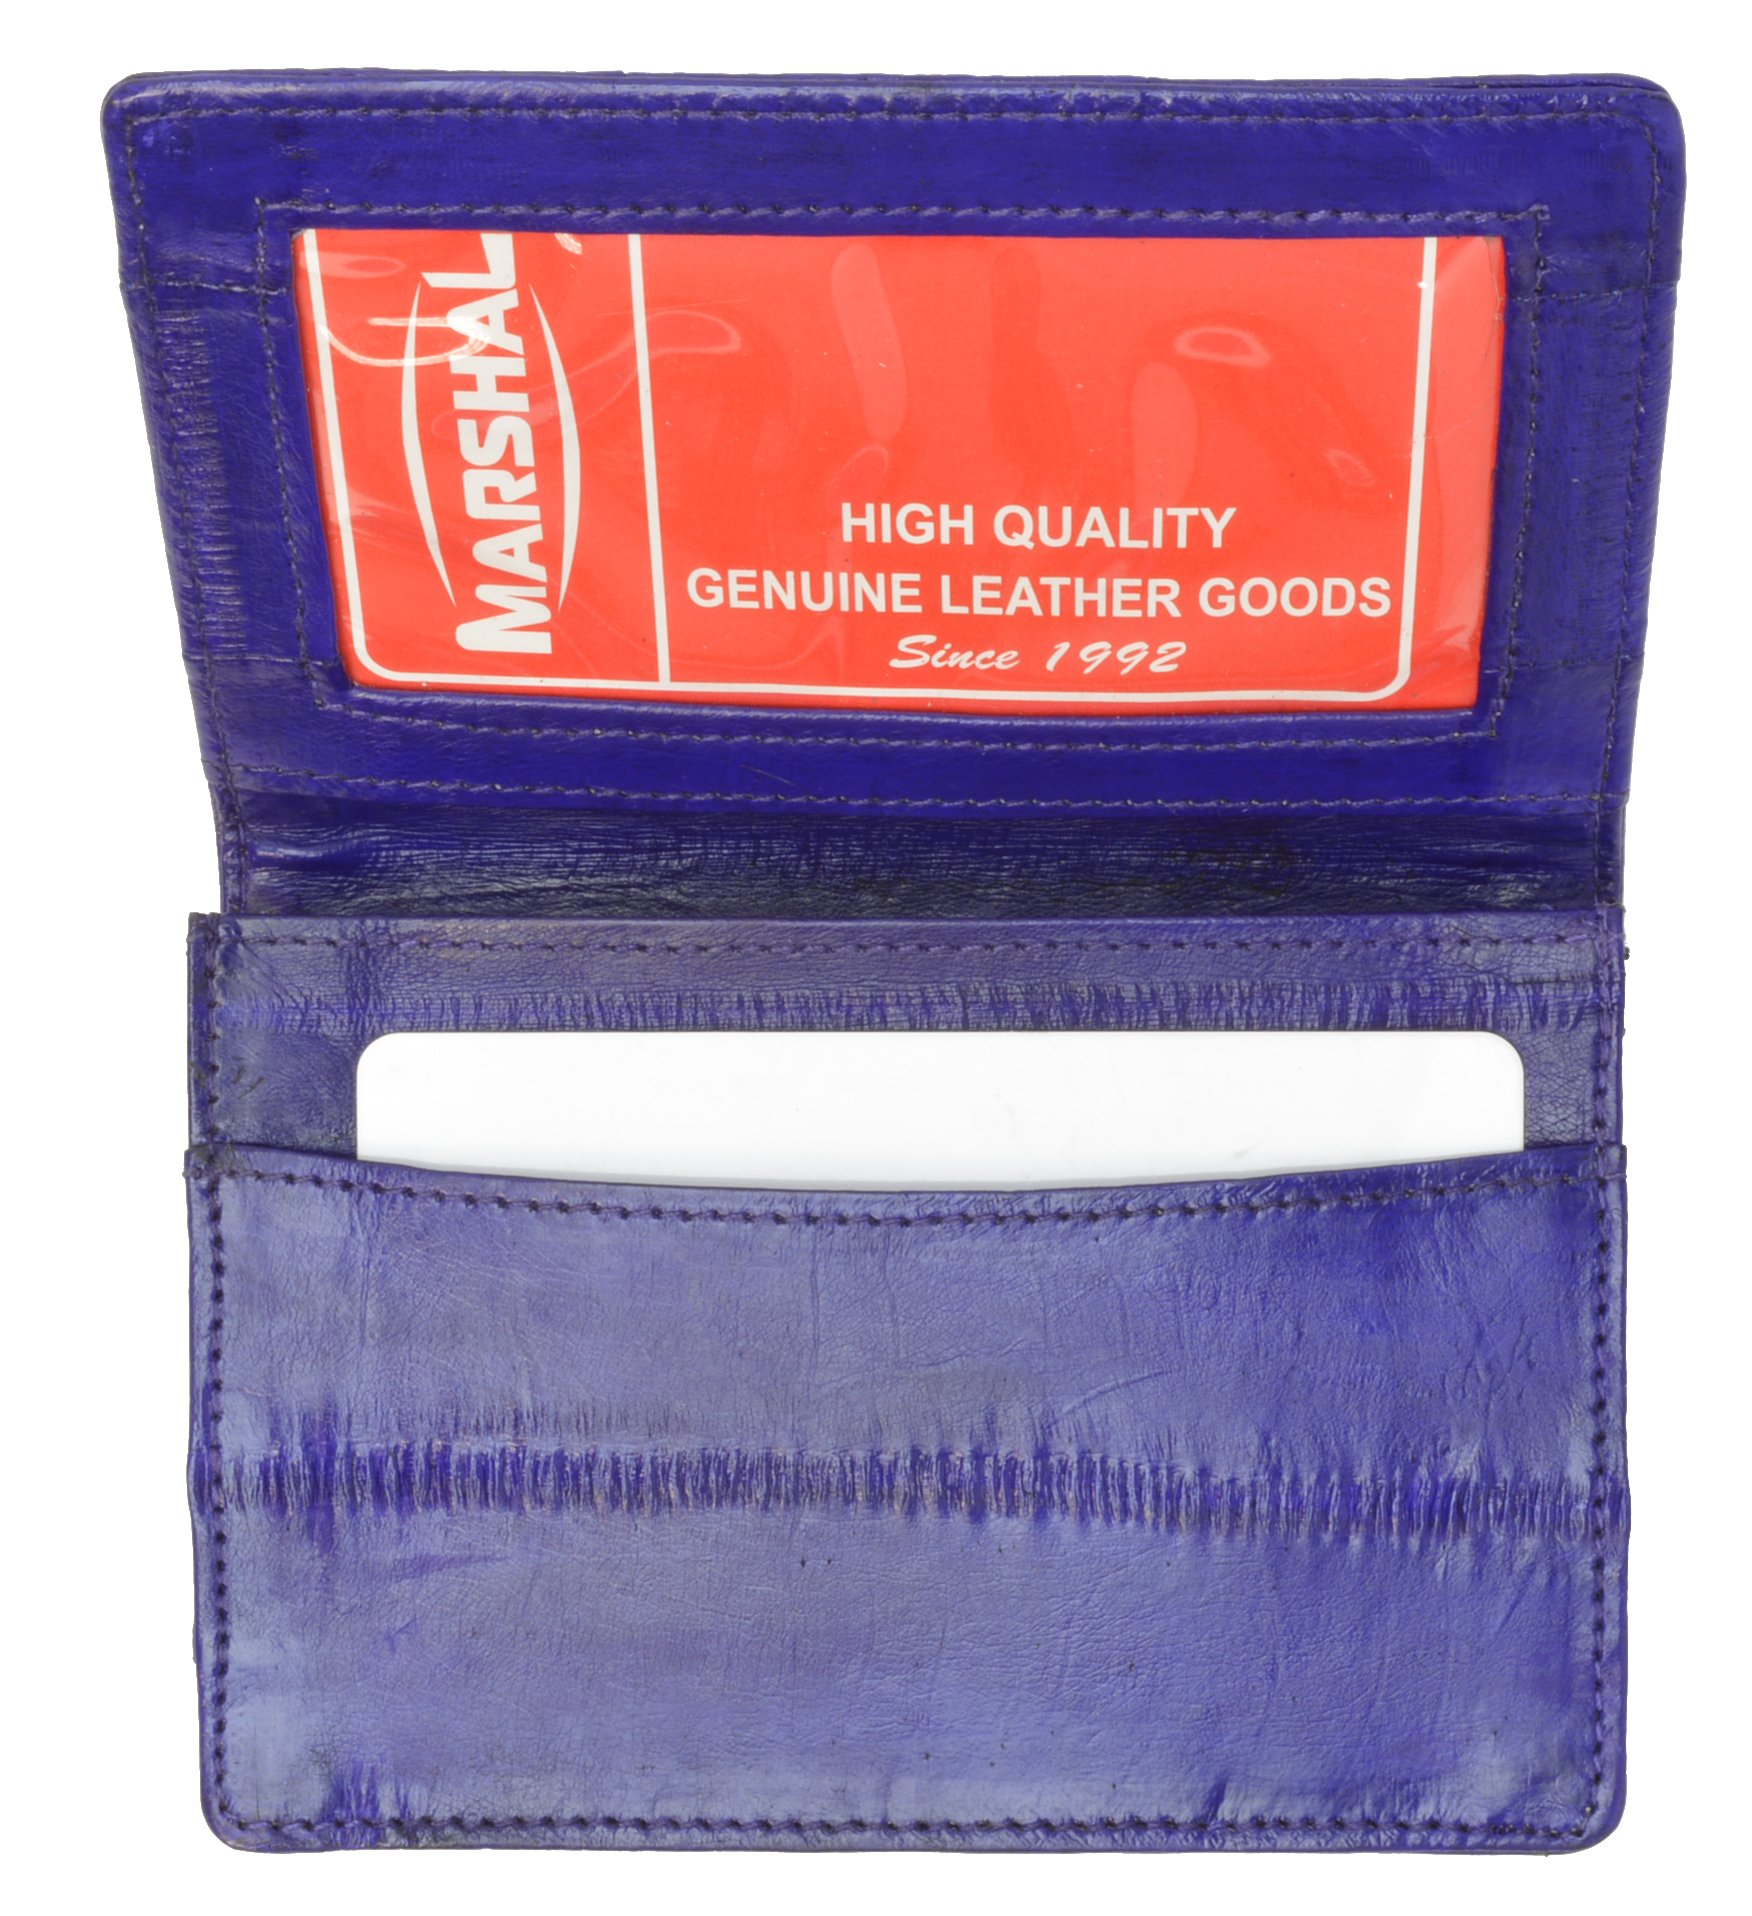 Eel Skin Soft Leather Business Card Credit Card Holder with Id Window by Marshal